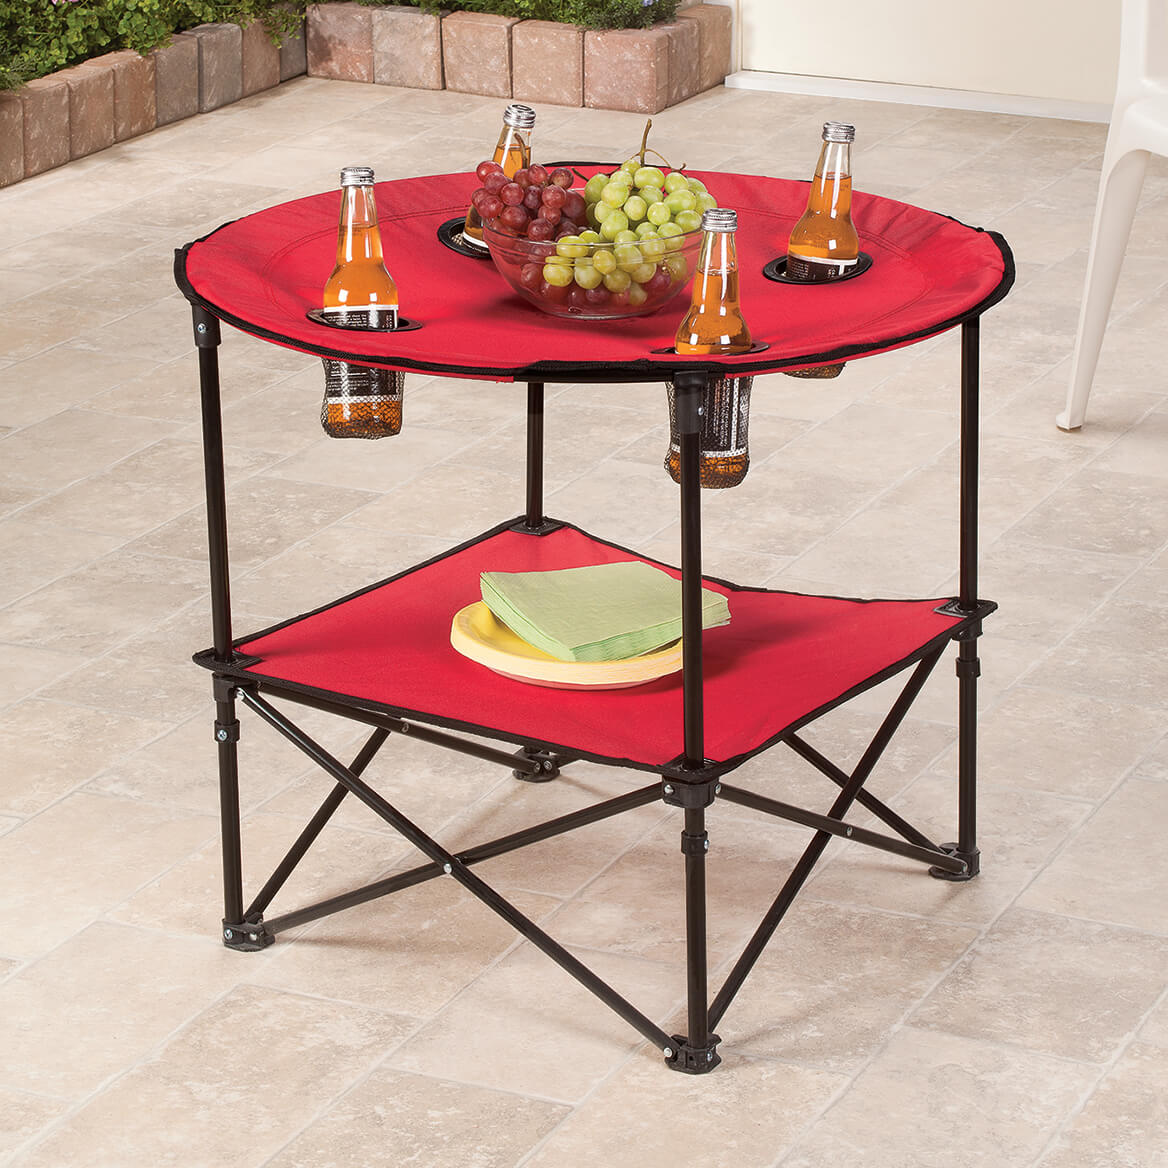 Red Folding Picnic Table-363306